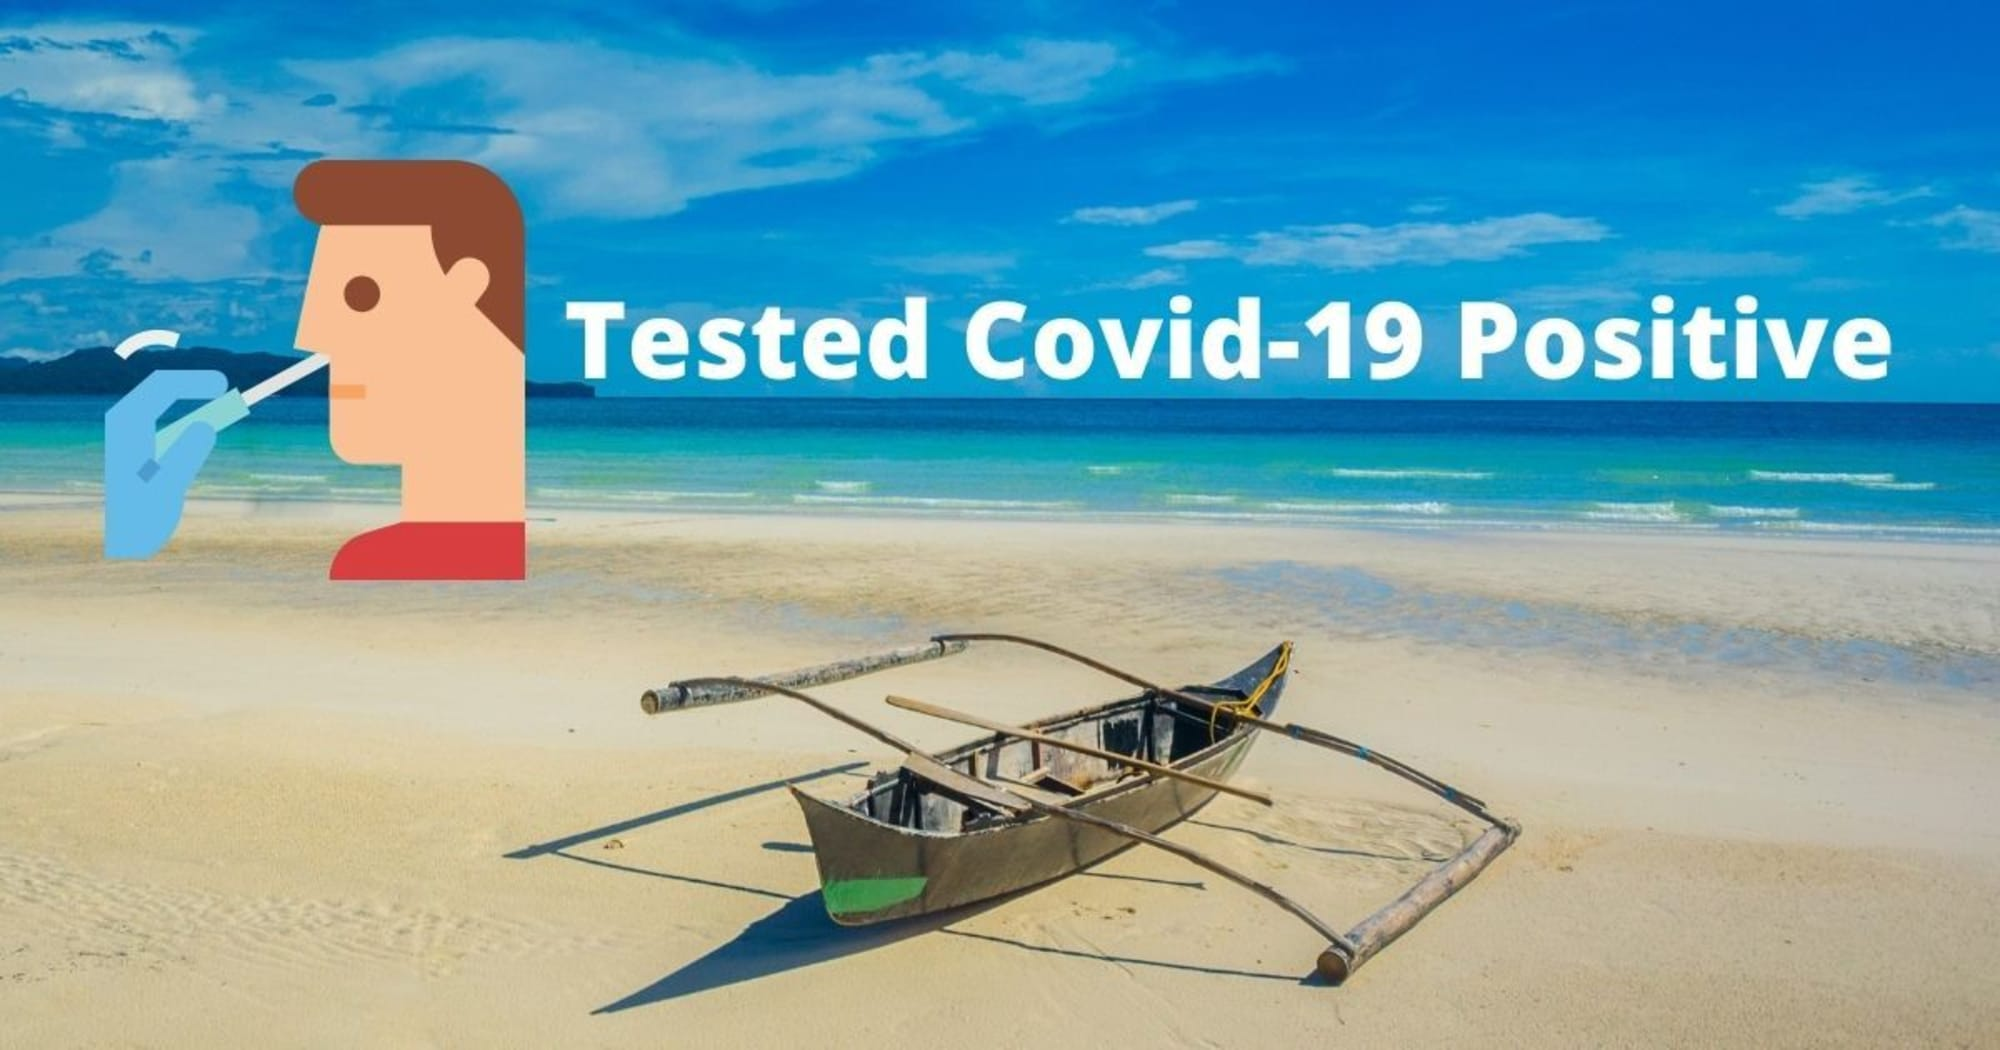 Boracay-based environment chief tested positive for COVID-19